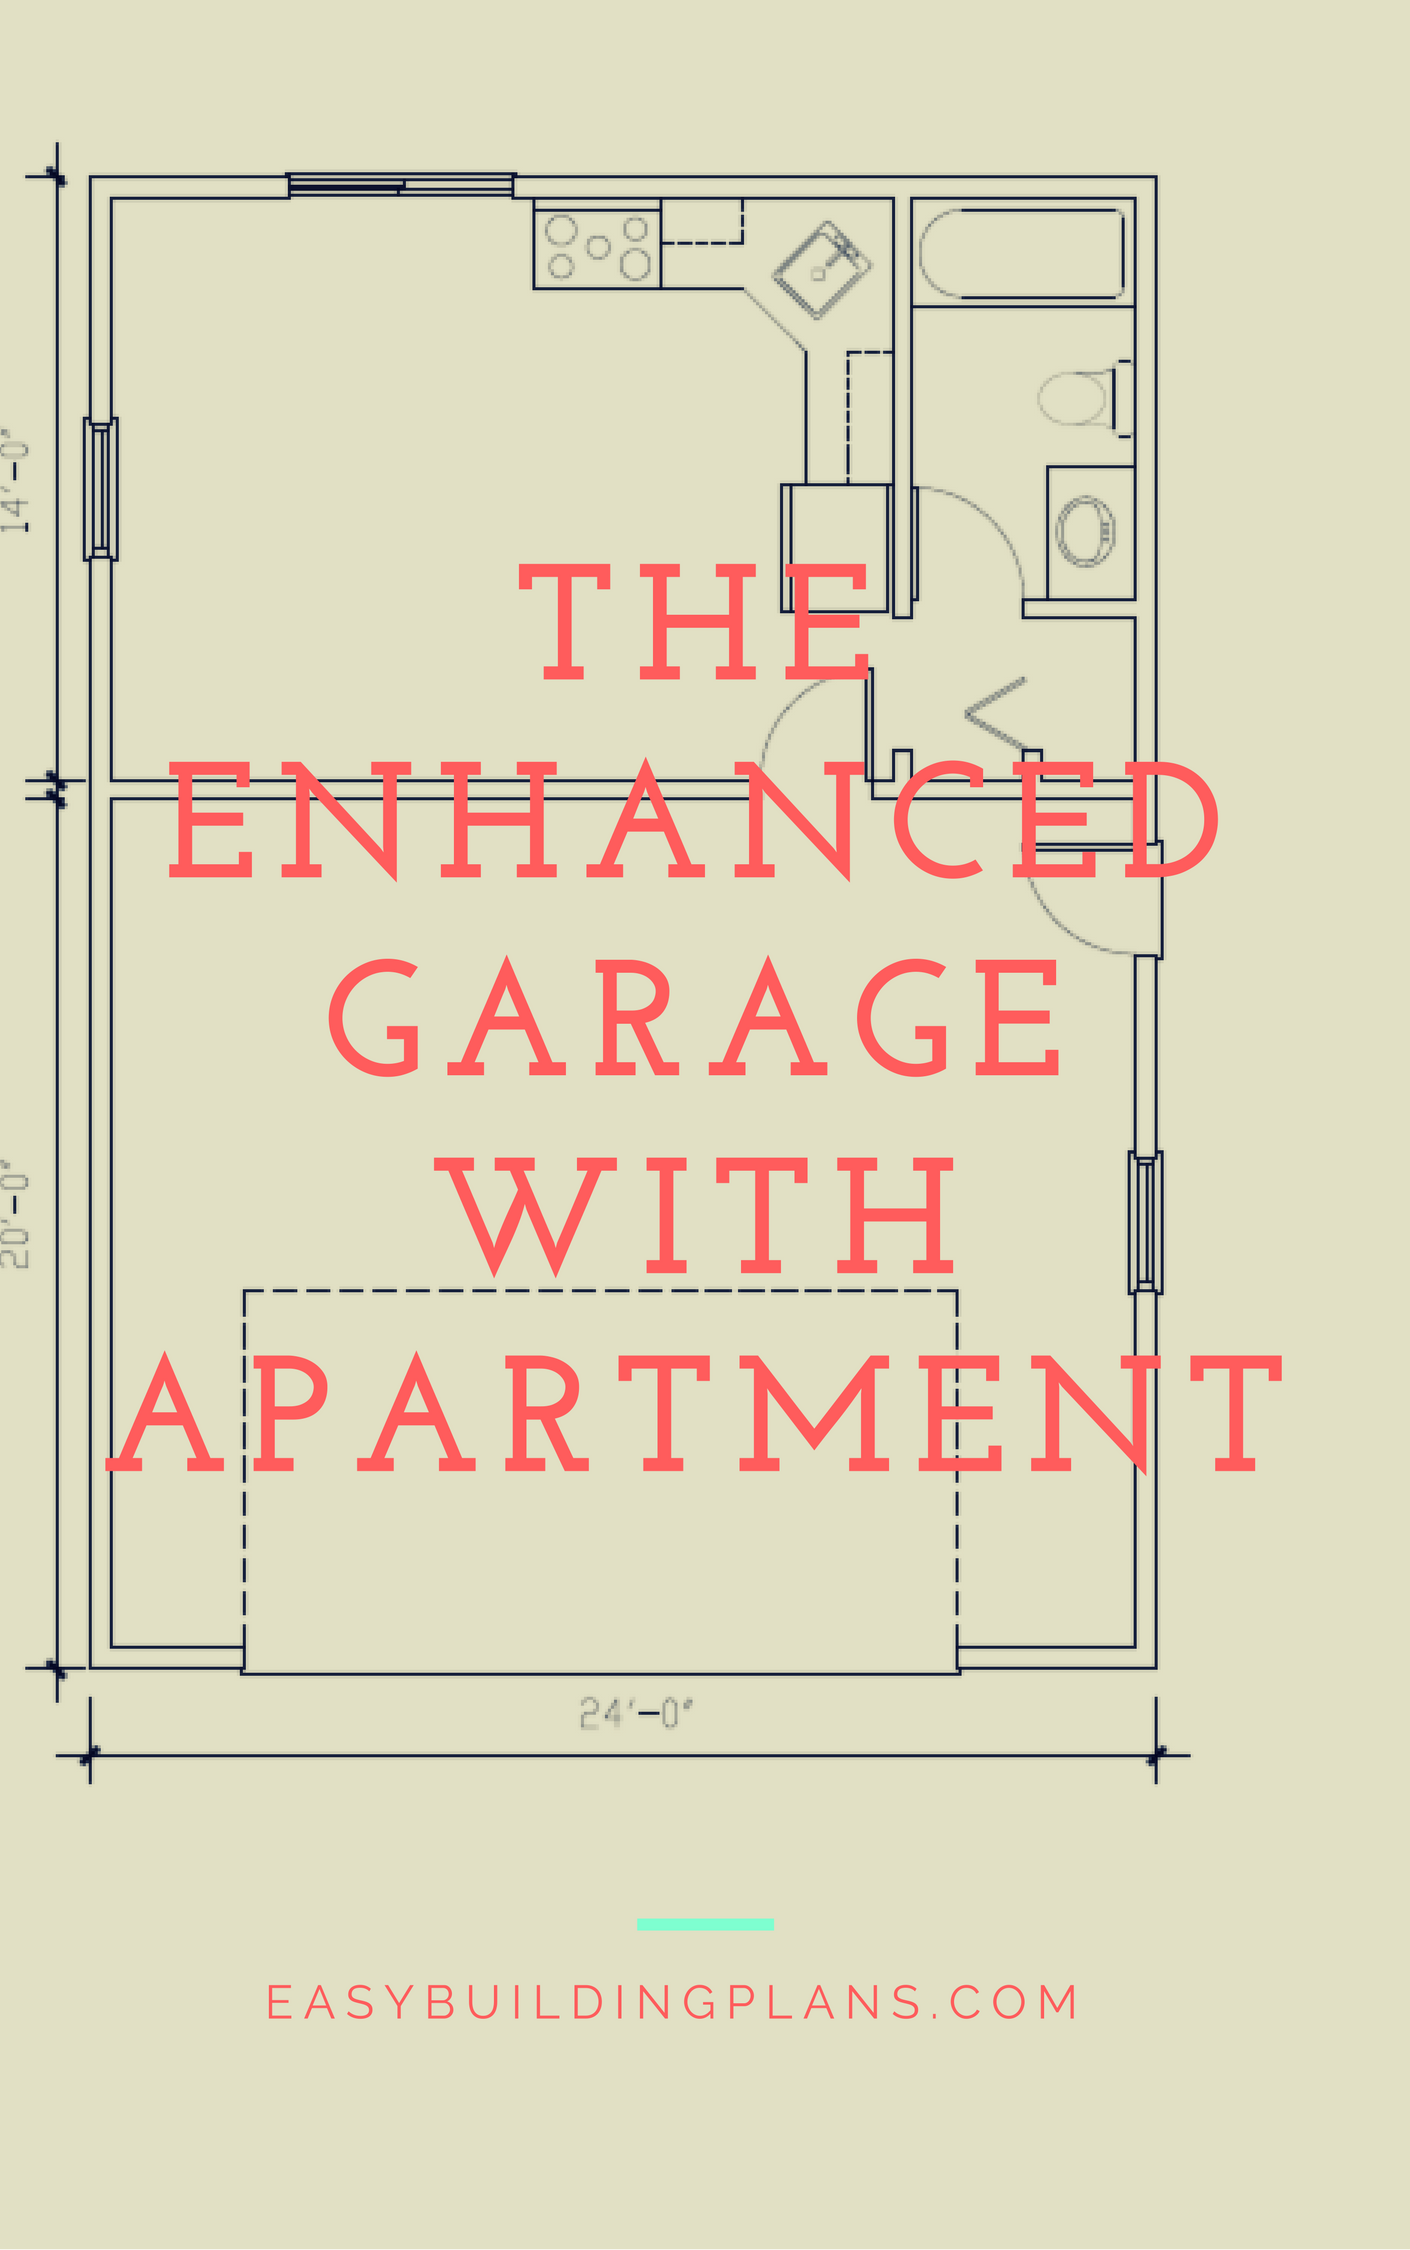 Easybuildingplans ready to use building plans for Garage with apartment plans ontario